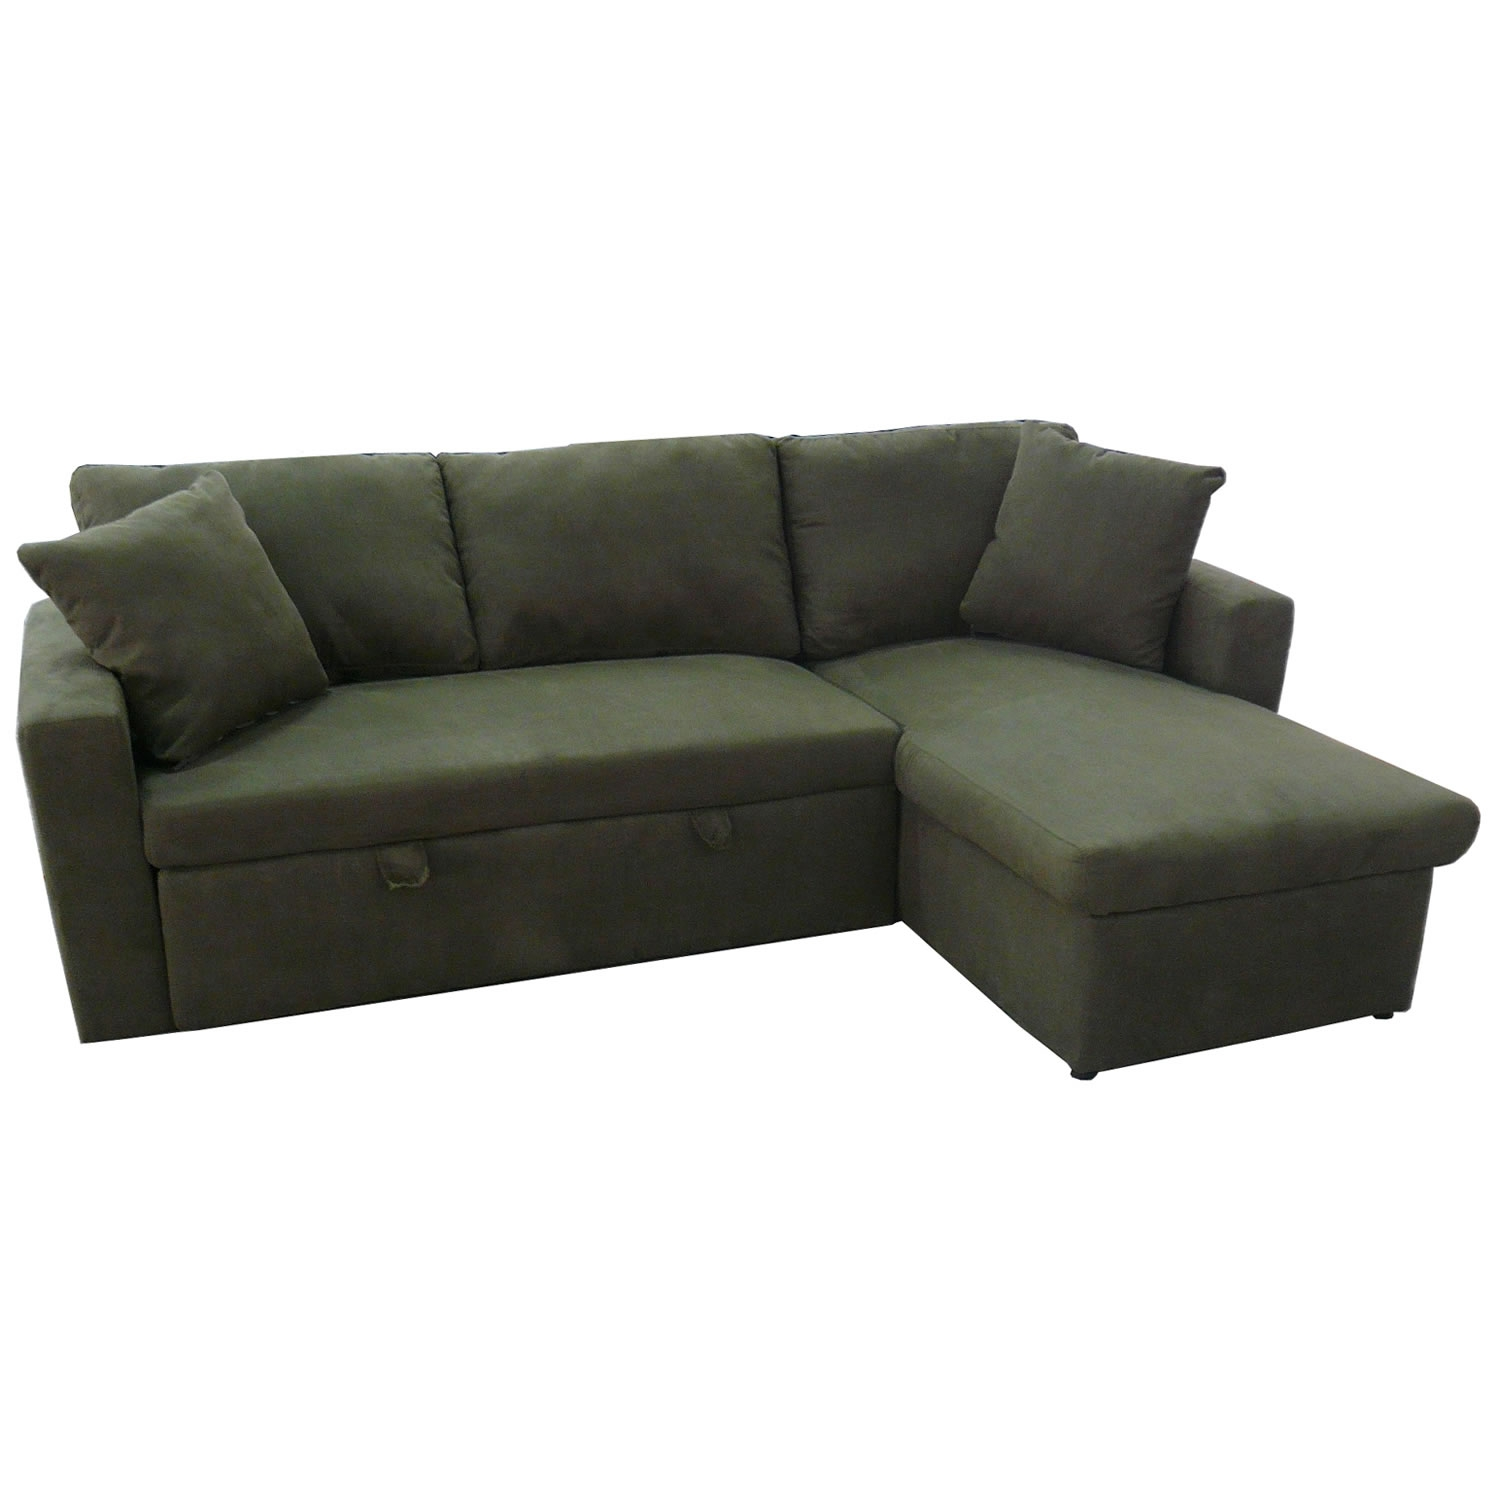 Sky Fabric Corner Sofa Bed With Storage S3net Sectional Sofas Within Corner Sofa Bed Sale (View 4 of 15)